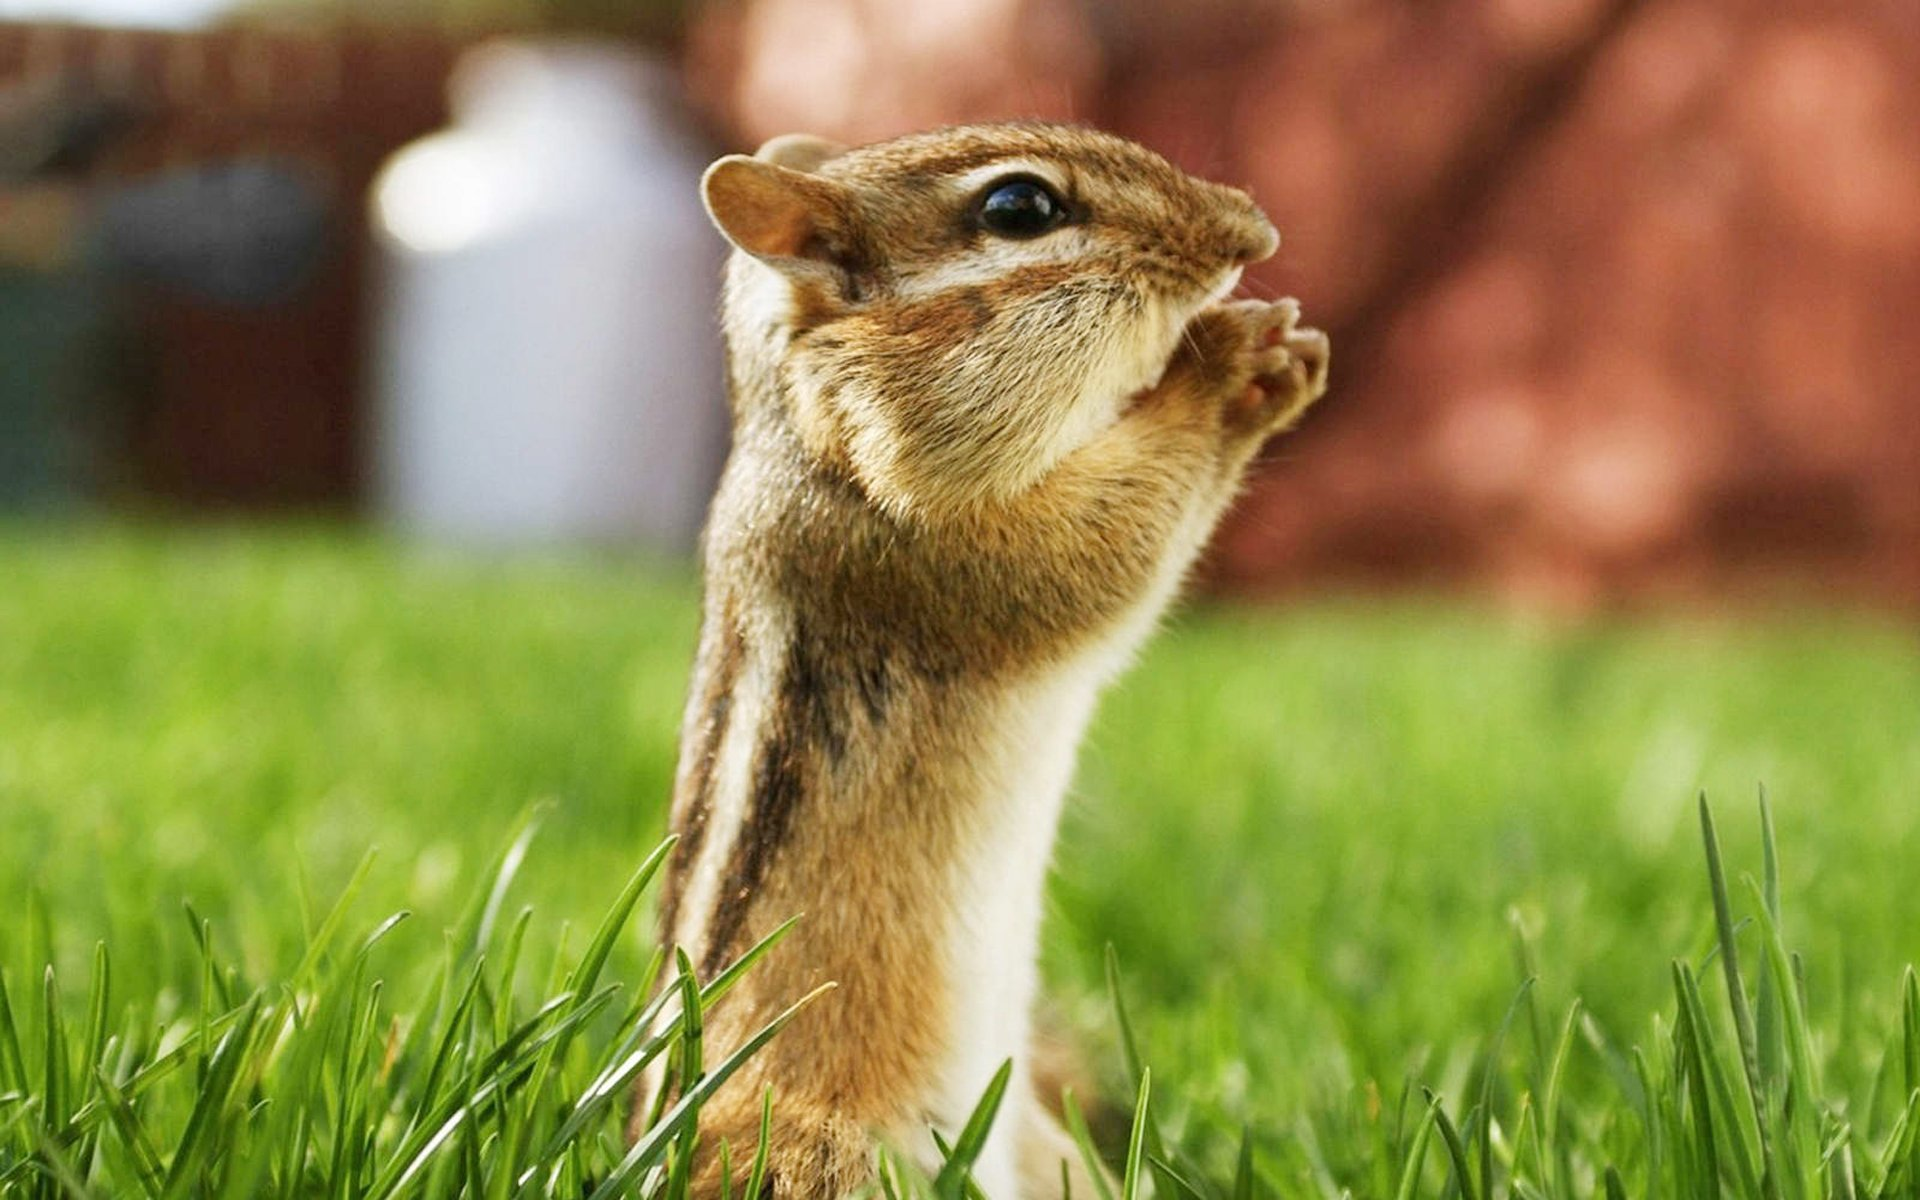 Funny animal wallpapers with words wallpapersafari - Funny animal wallpapers ...